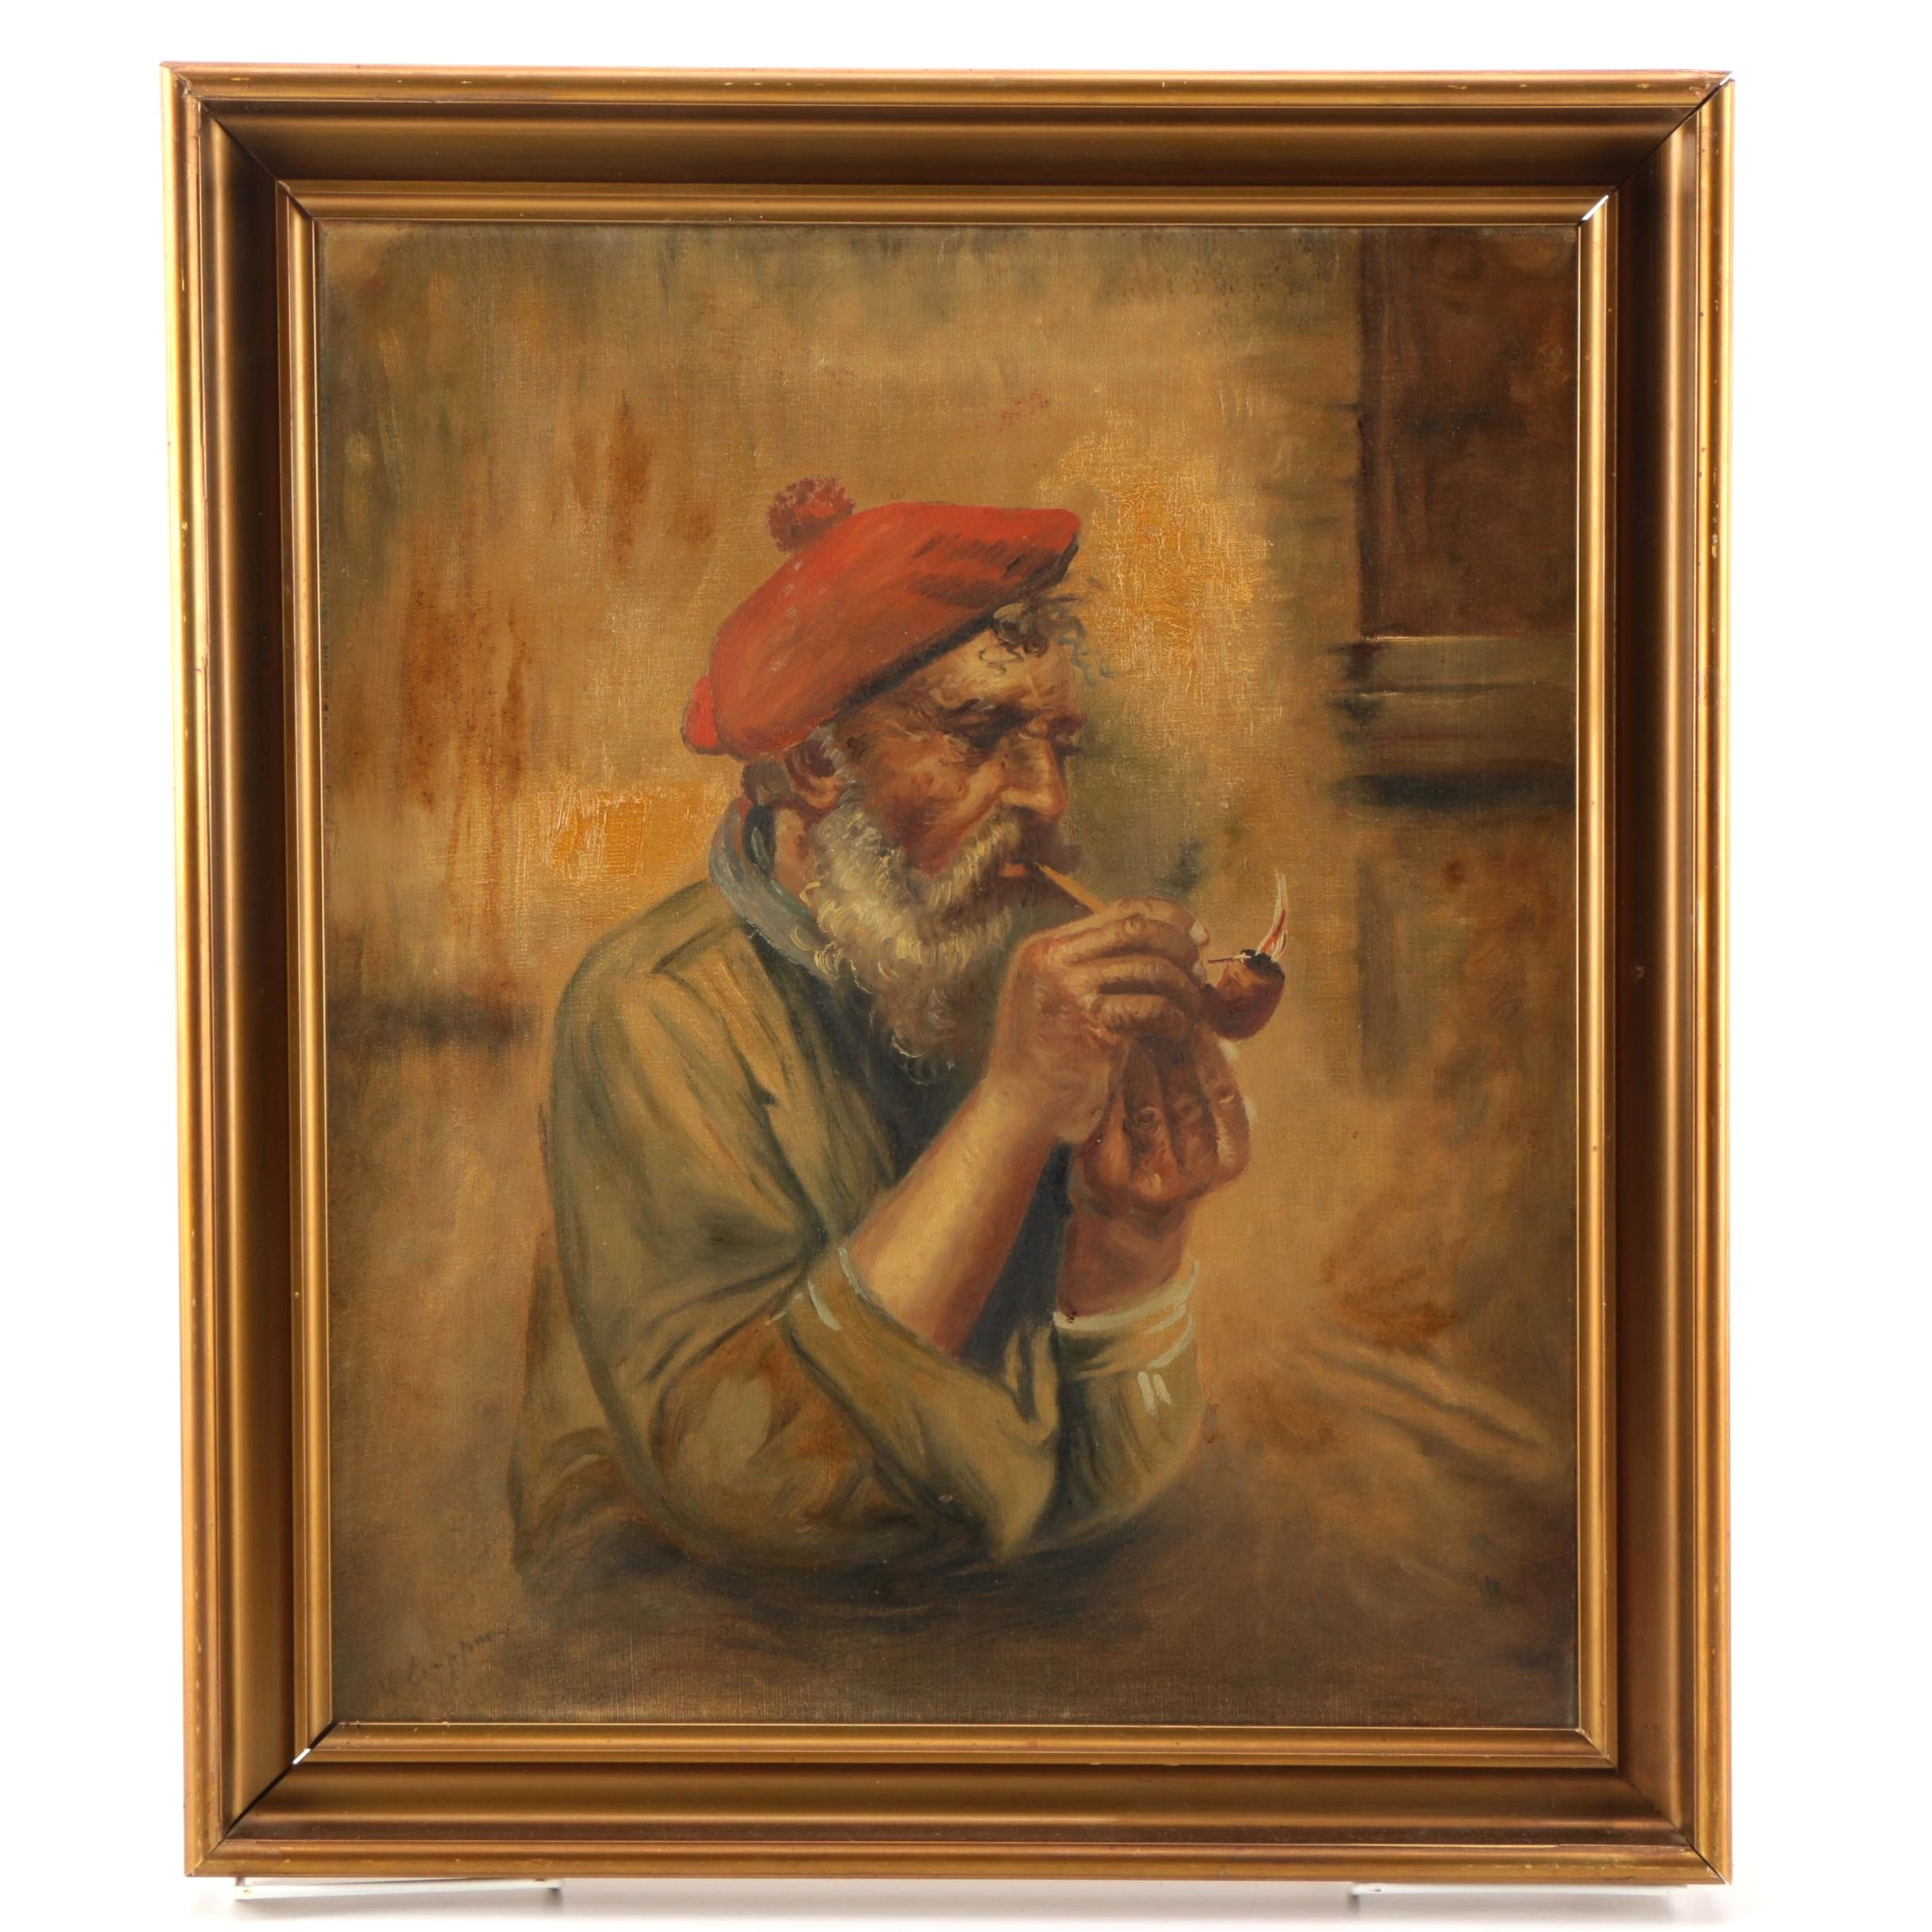 V. Ciappa Oil Painting on Canvas Portrait of Man Smoking a Pipe